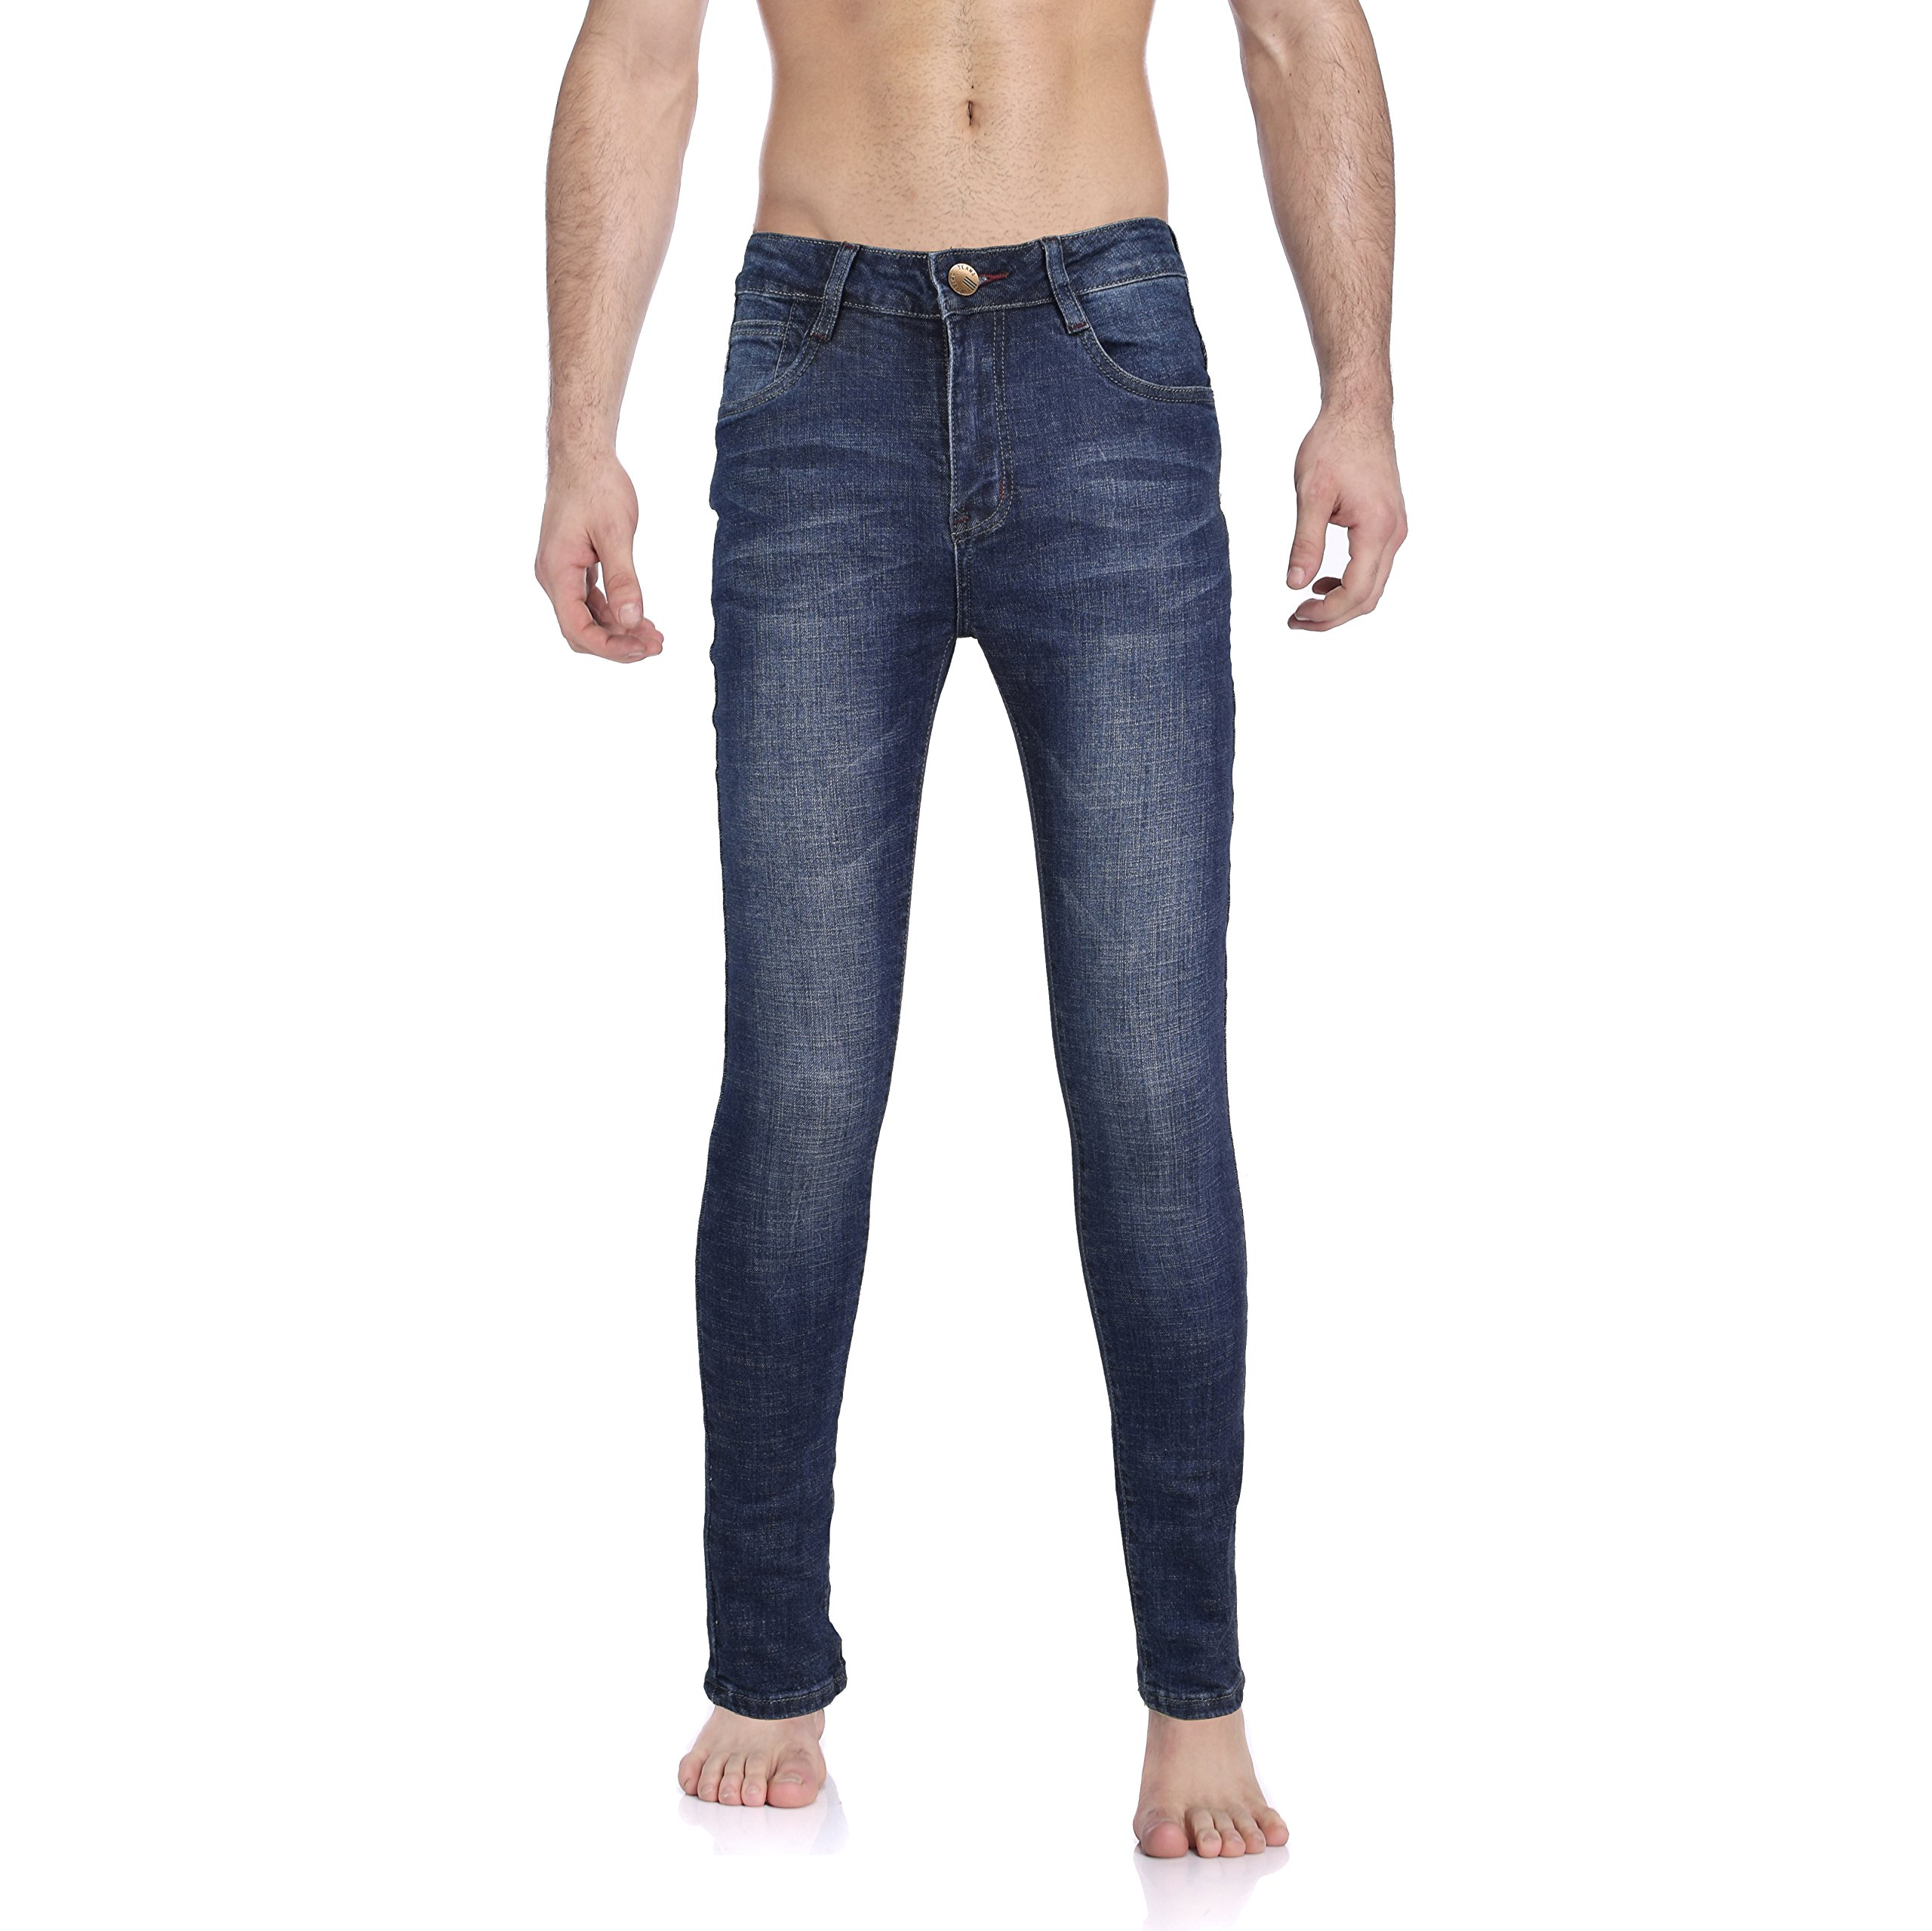 Tusalmo Jeans for Young Men (32W, Blue-6687#)